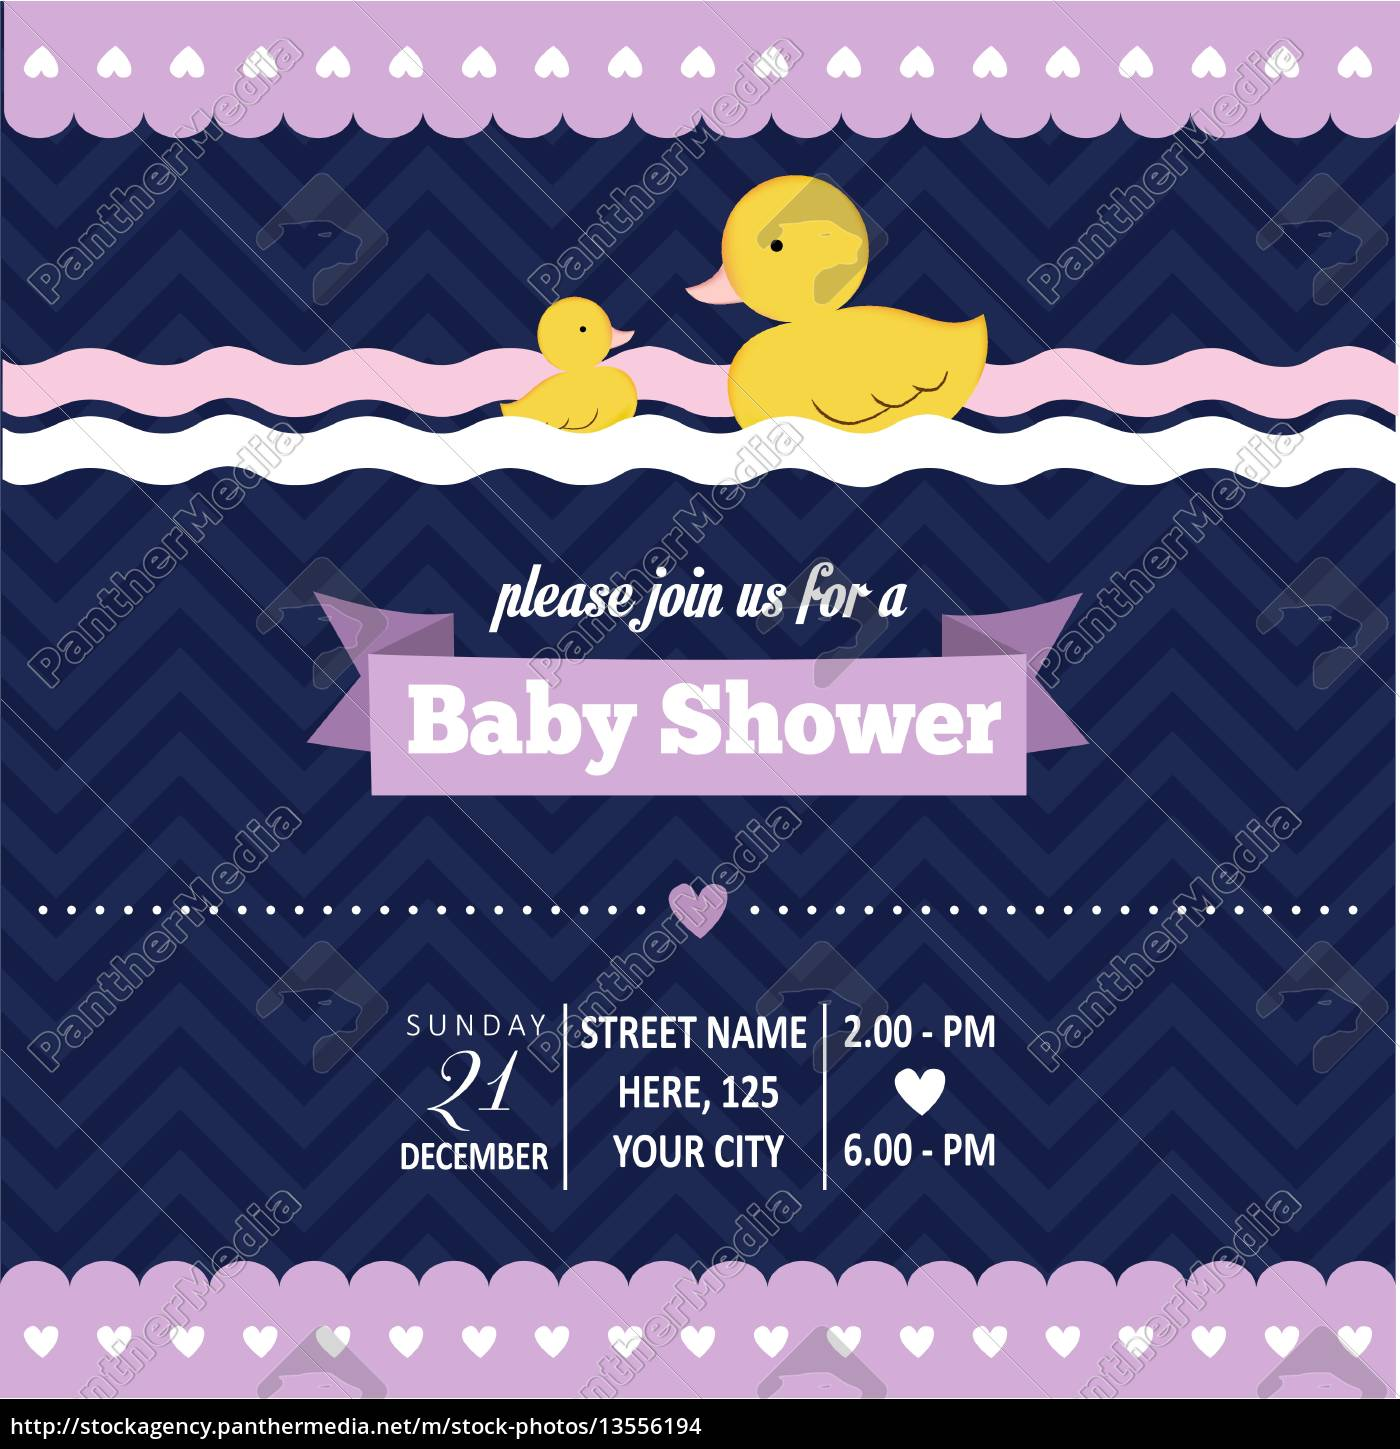 baby, shower, invitation, with, duck, in - 13556194